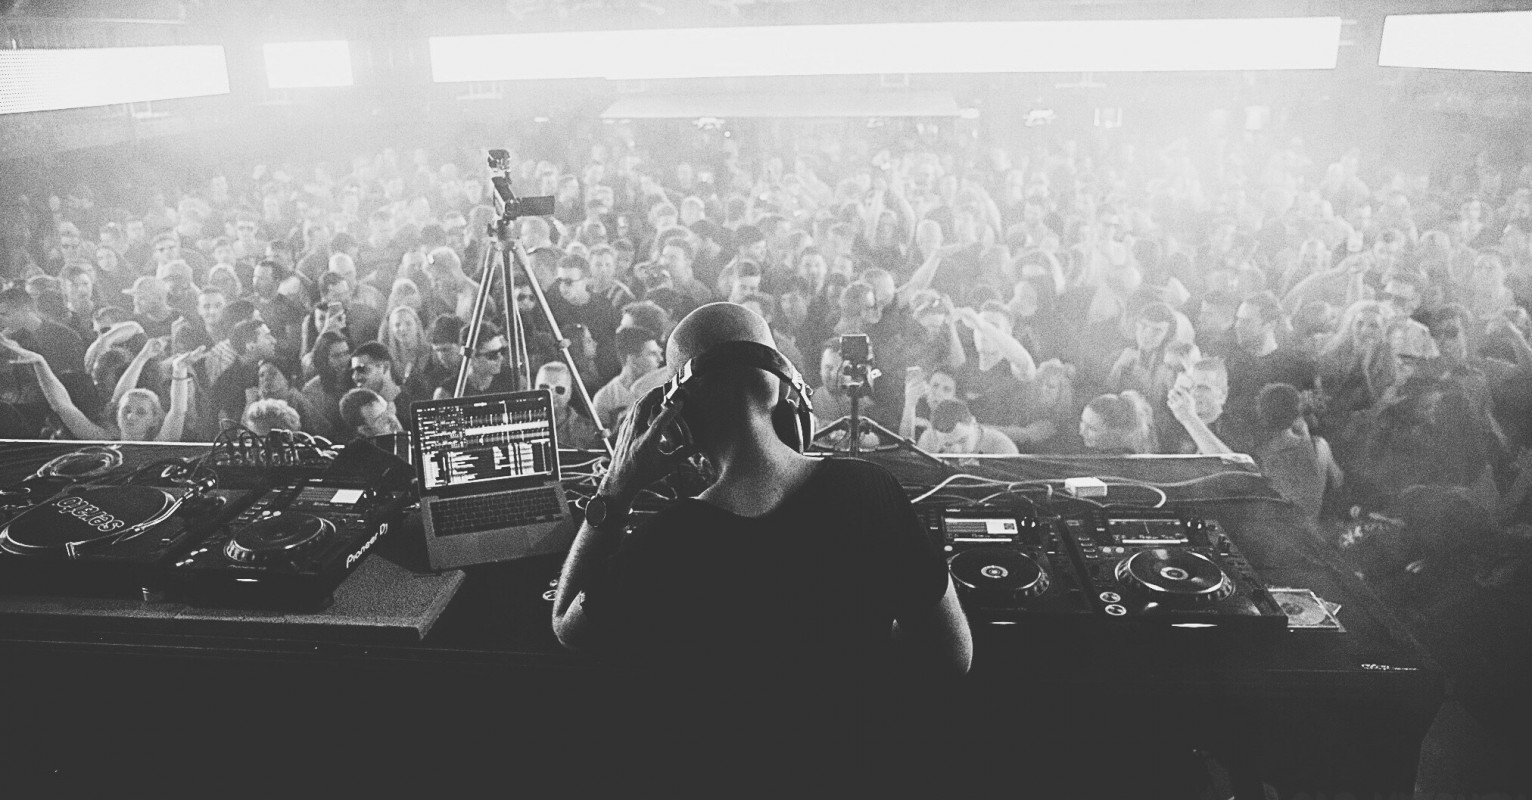 Uncertain's Frantic EP lands on Paco Osuna's Mindshake Records